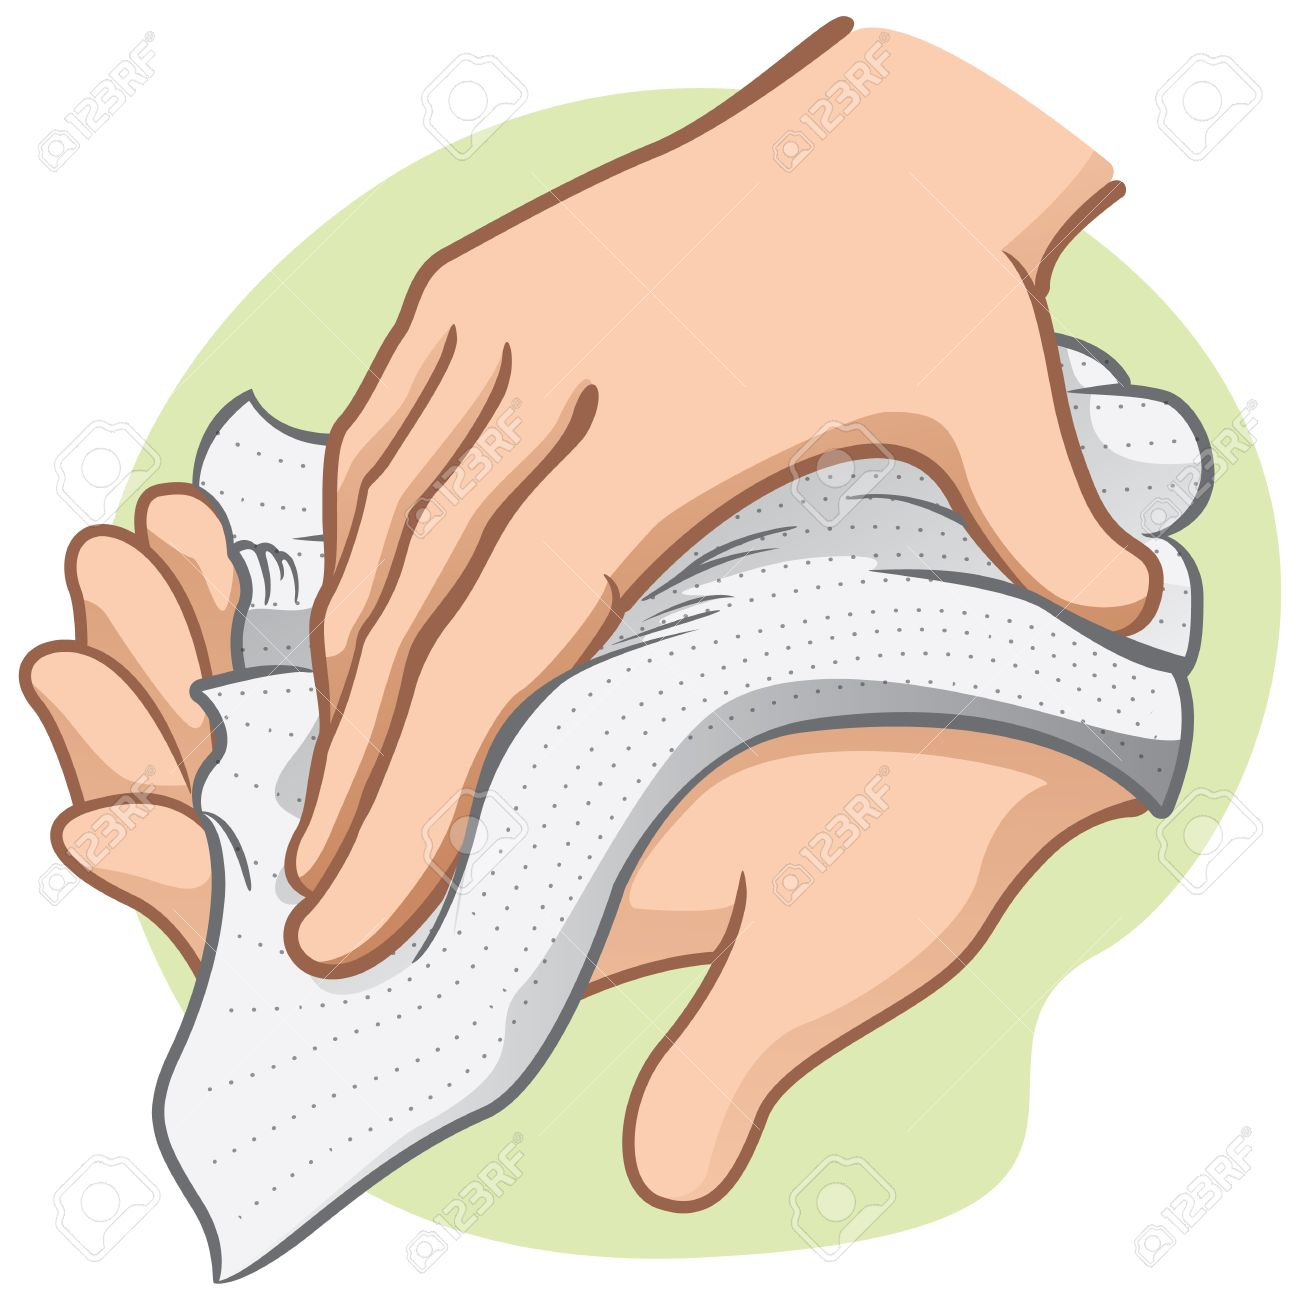 Drying Hands With Paper Towel Clipart.